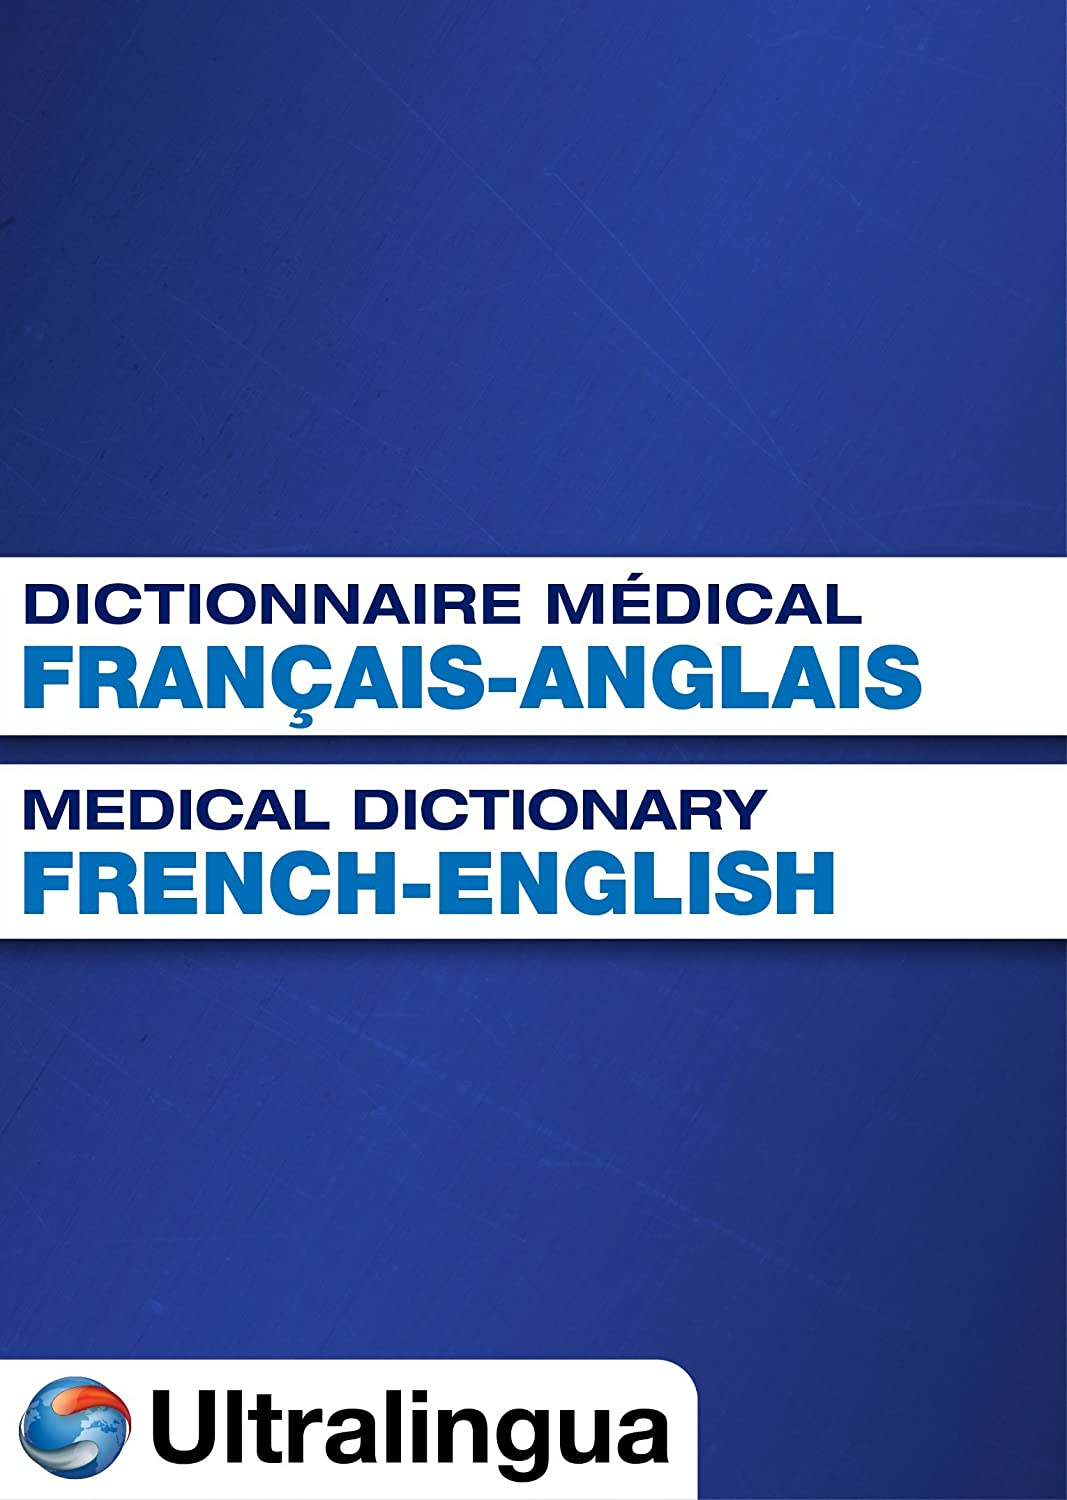 French-English Medical Dictionary Max 61% OFF Ranking TOP17 PC Download for